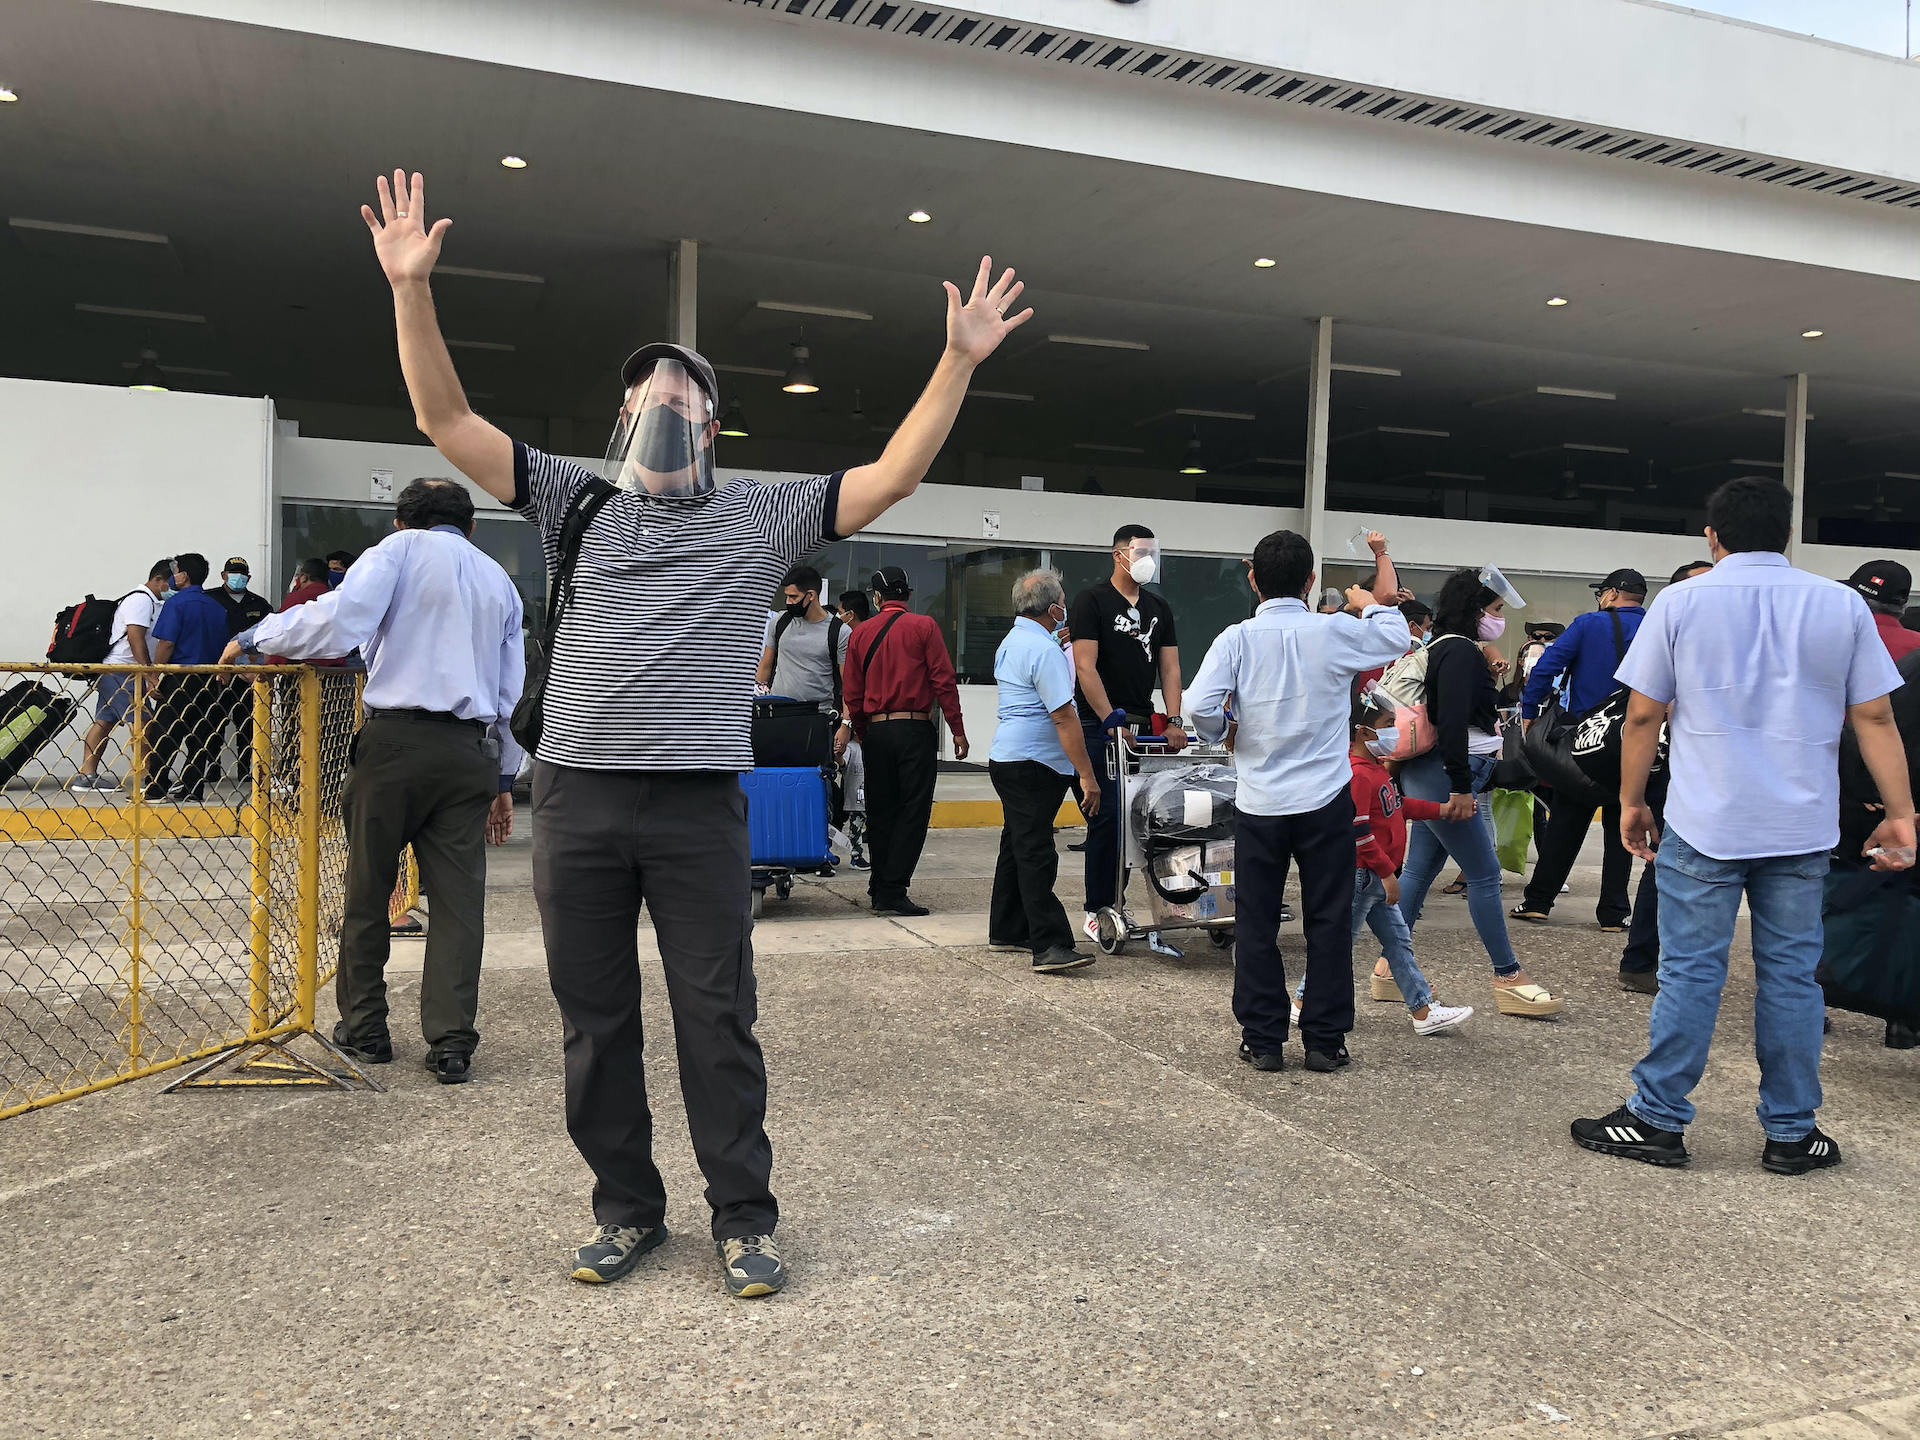 7. Proper distance must be maintained in the Iquitos baggage claim area